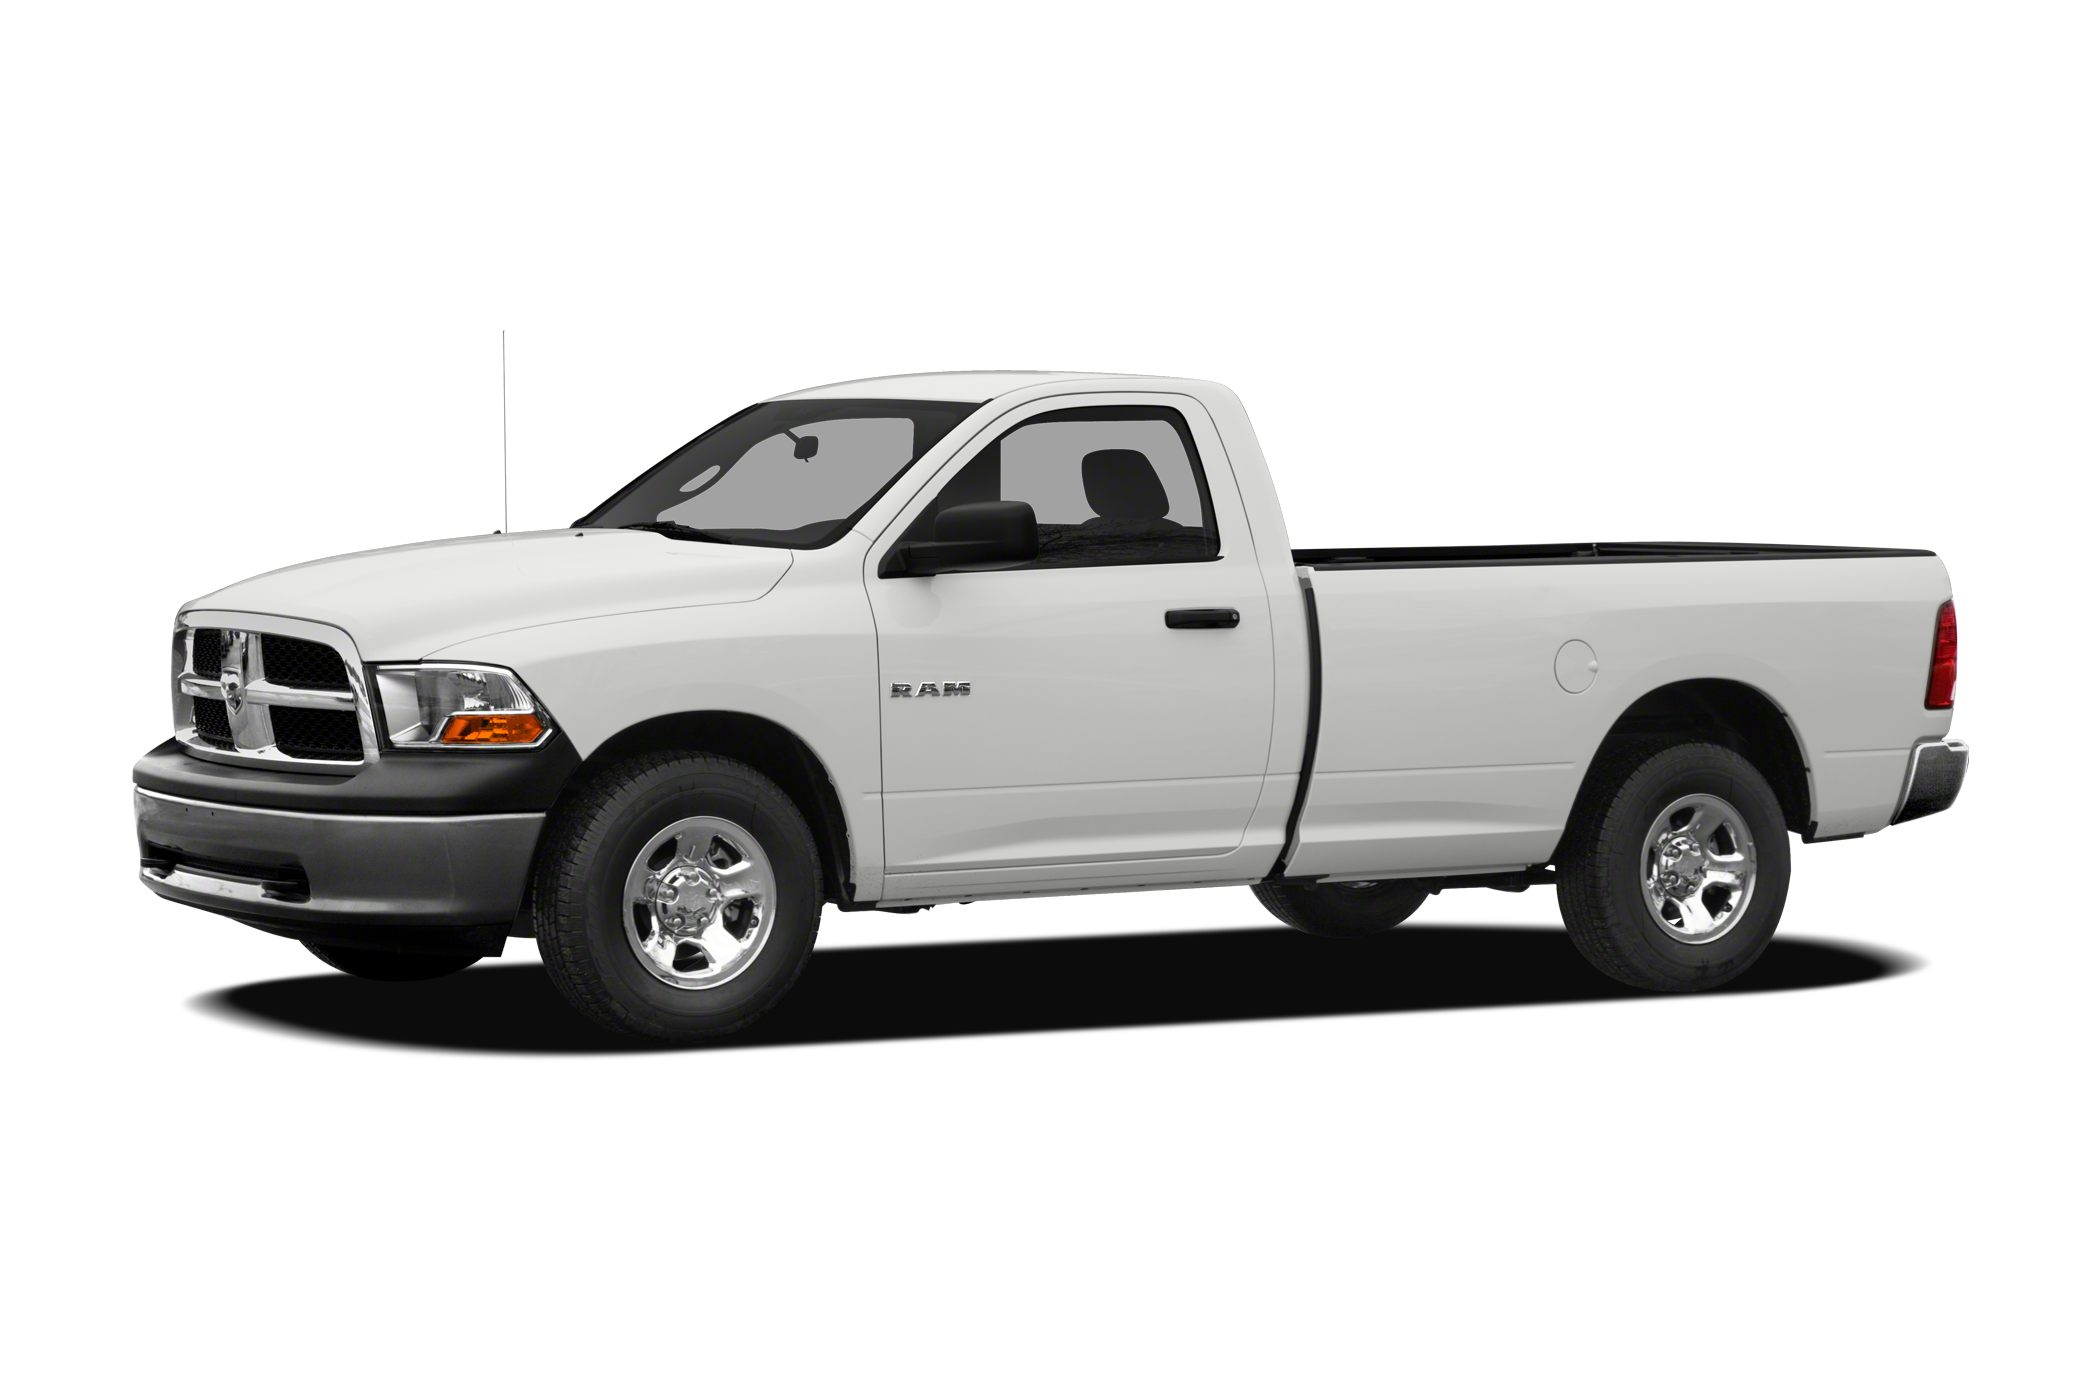 2012 RAM 1500 SLT Crew Cab Pickup for sale in Leesburg for $25,487 with 53,777 miles